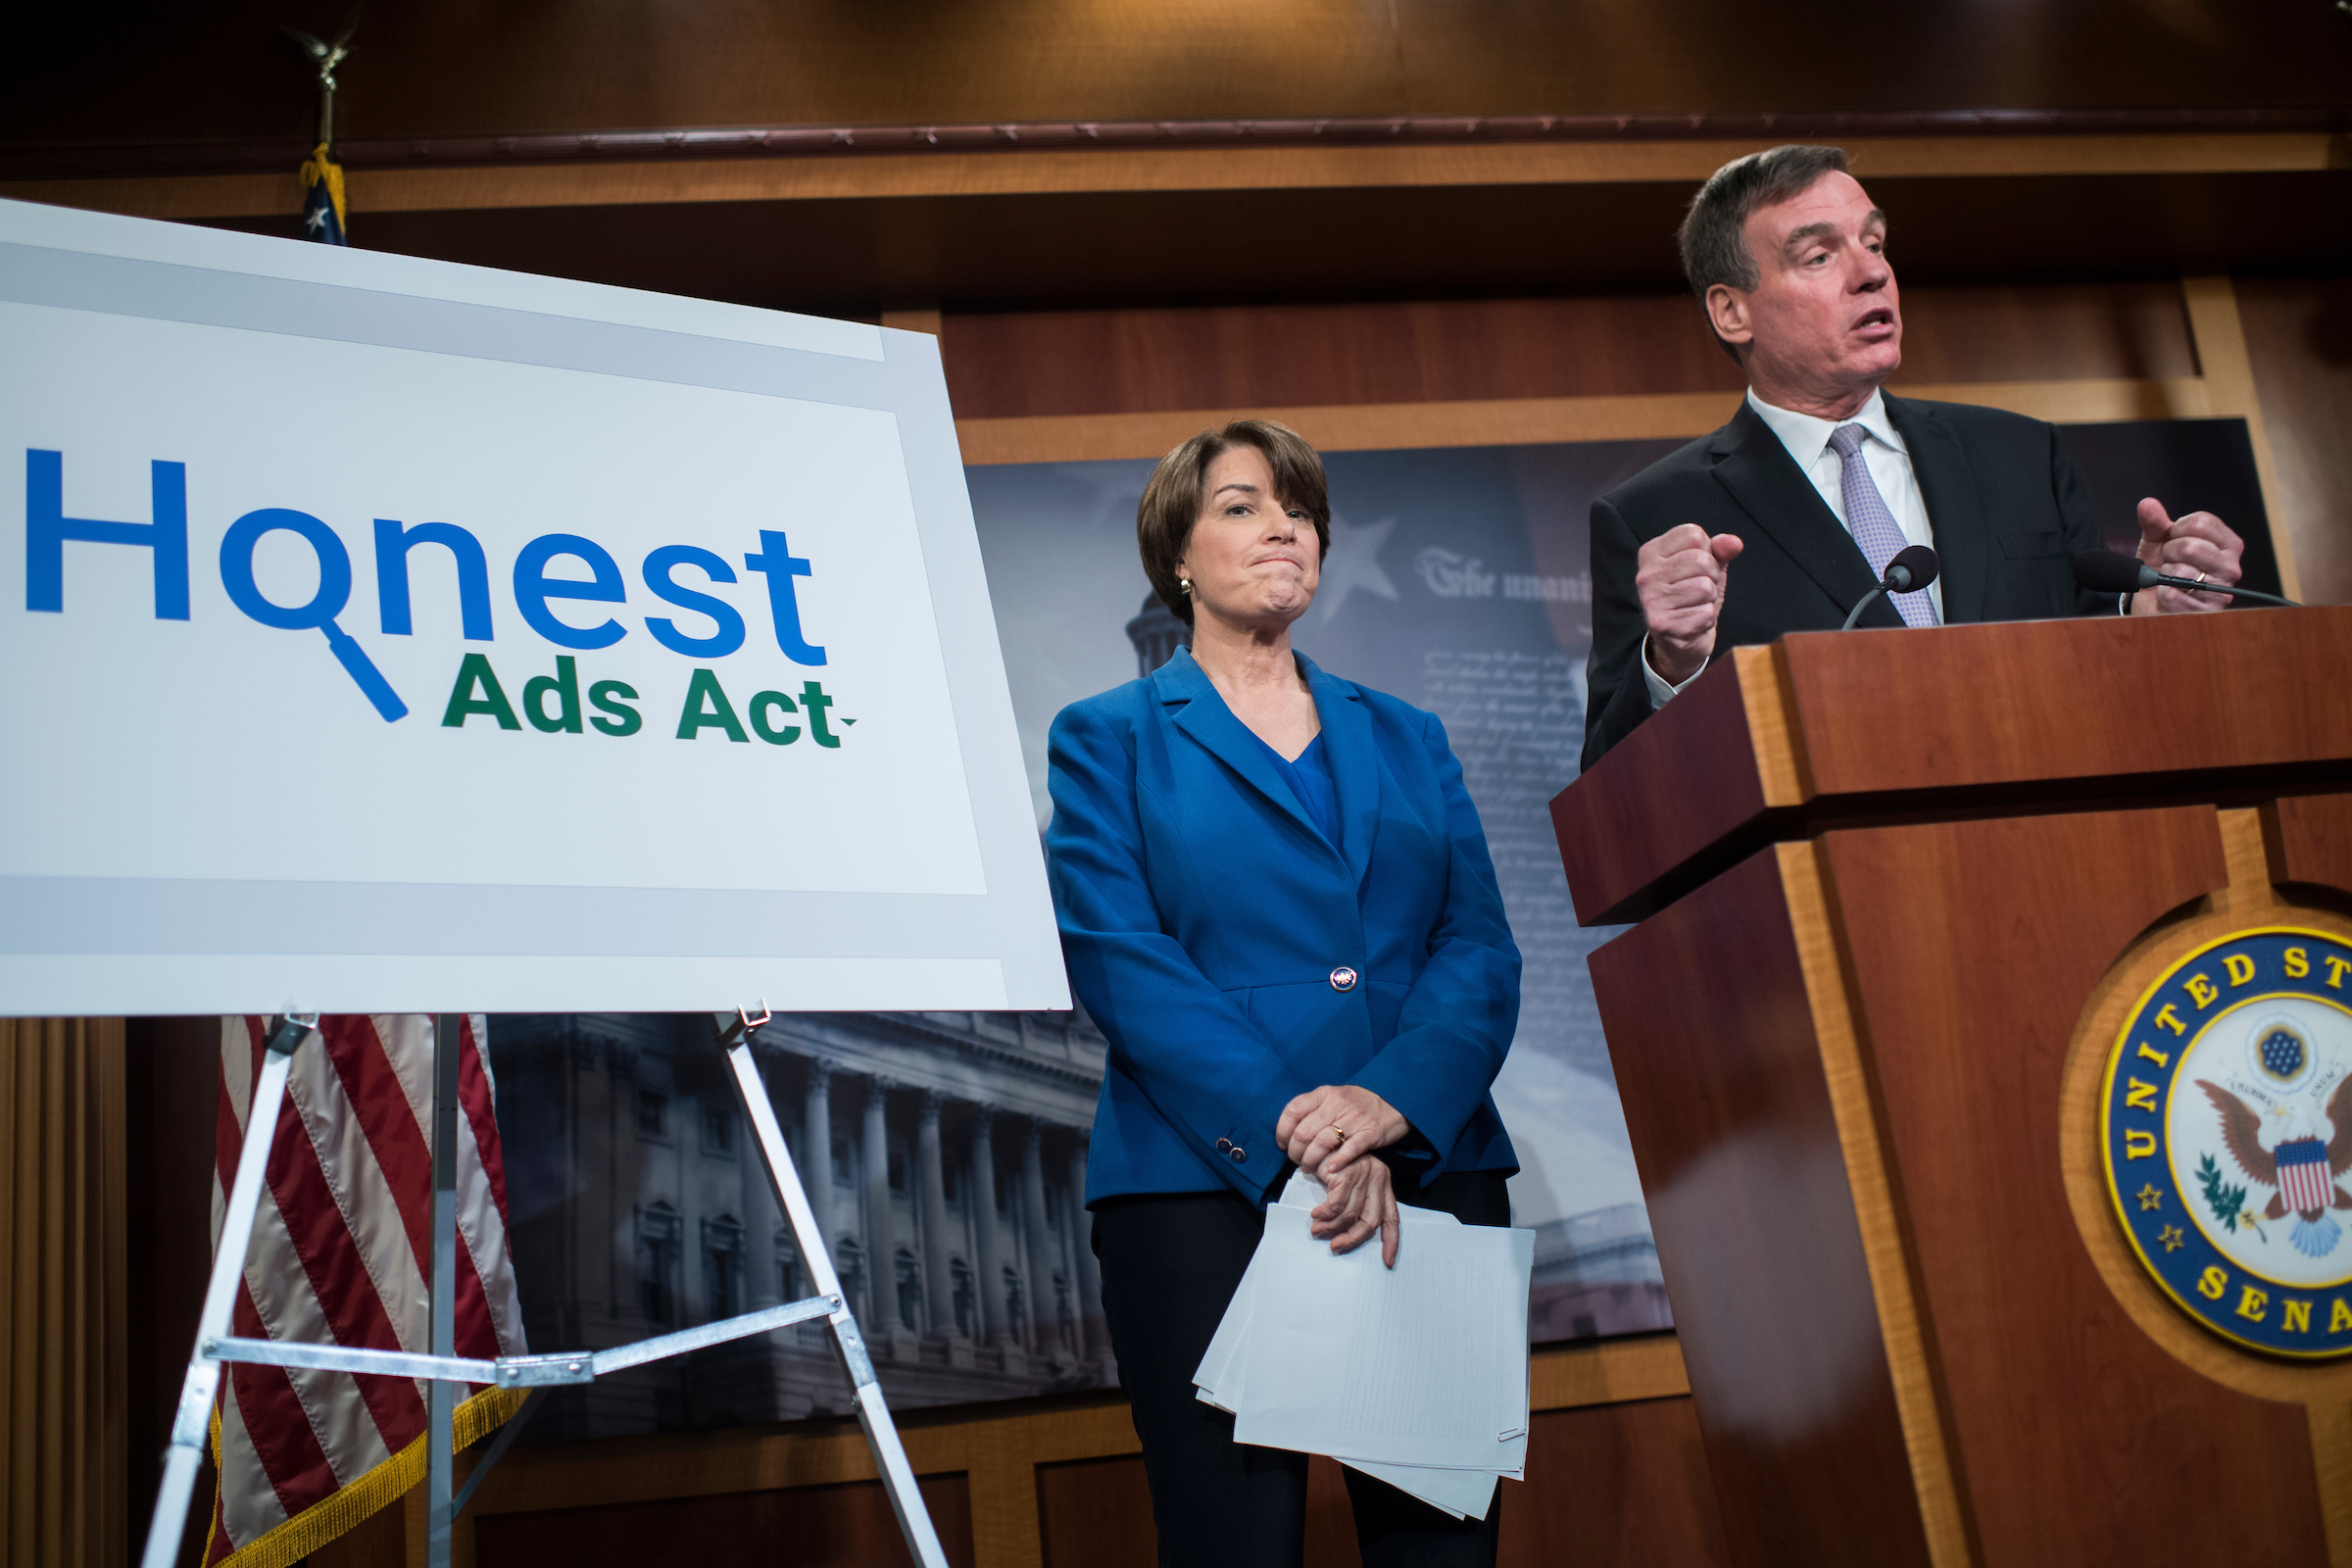 UNITED STATES - OCTOBER 19: Sens. Amy Klobuchar, D-Minn., and Mark Warner, D-Va., conduct a news conference in the Capitol on the Honest Ads Act which aims to make online political ads more transparent on October 19, 2017. (Photo By Tom Williams/CQ Roll Call)